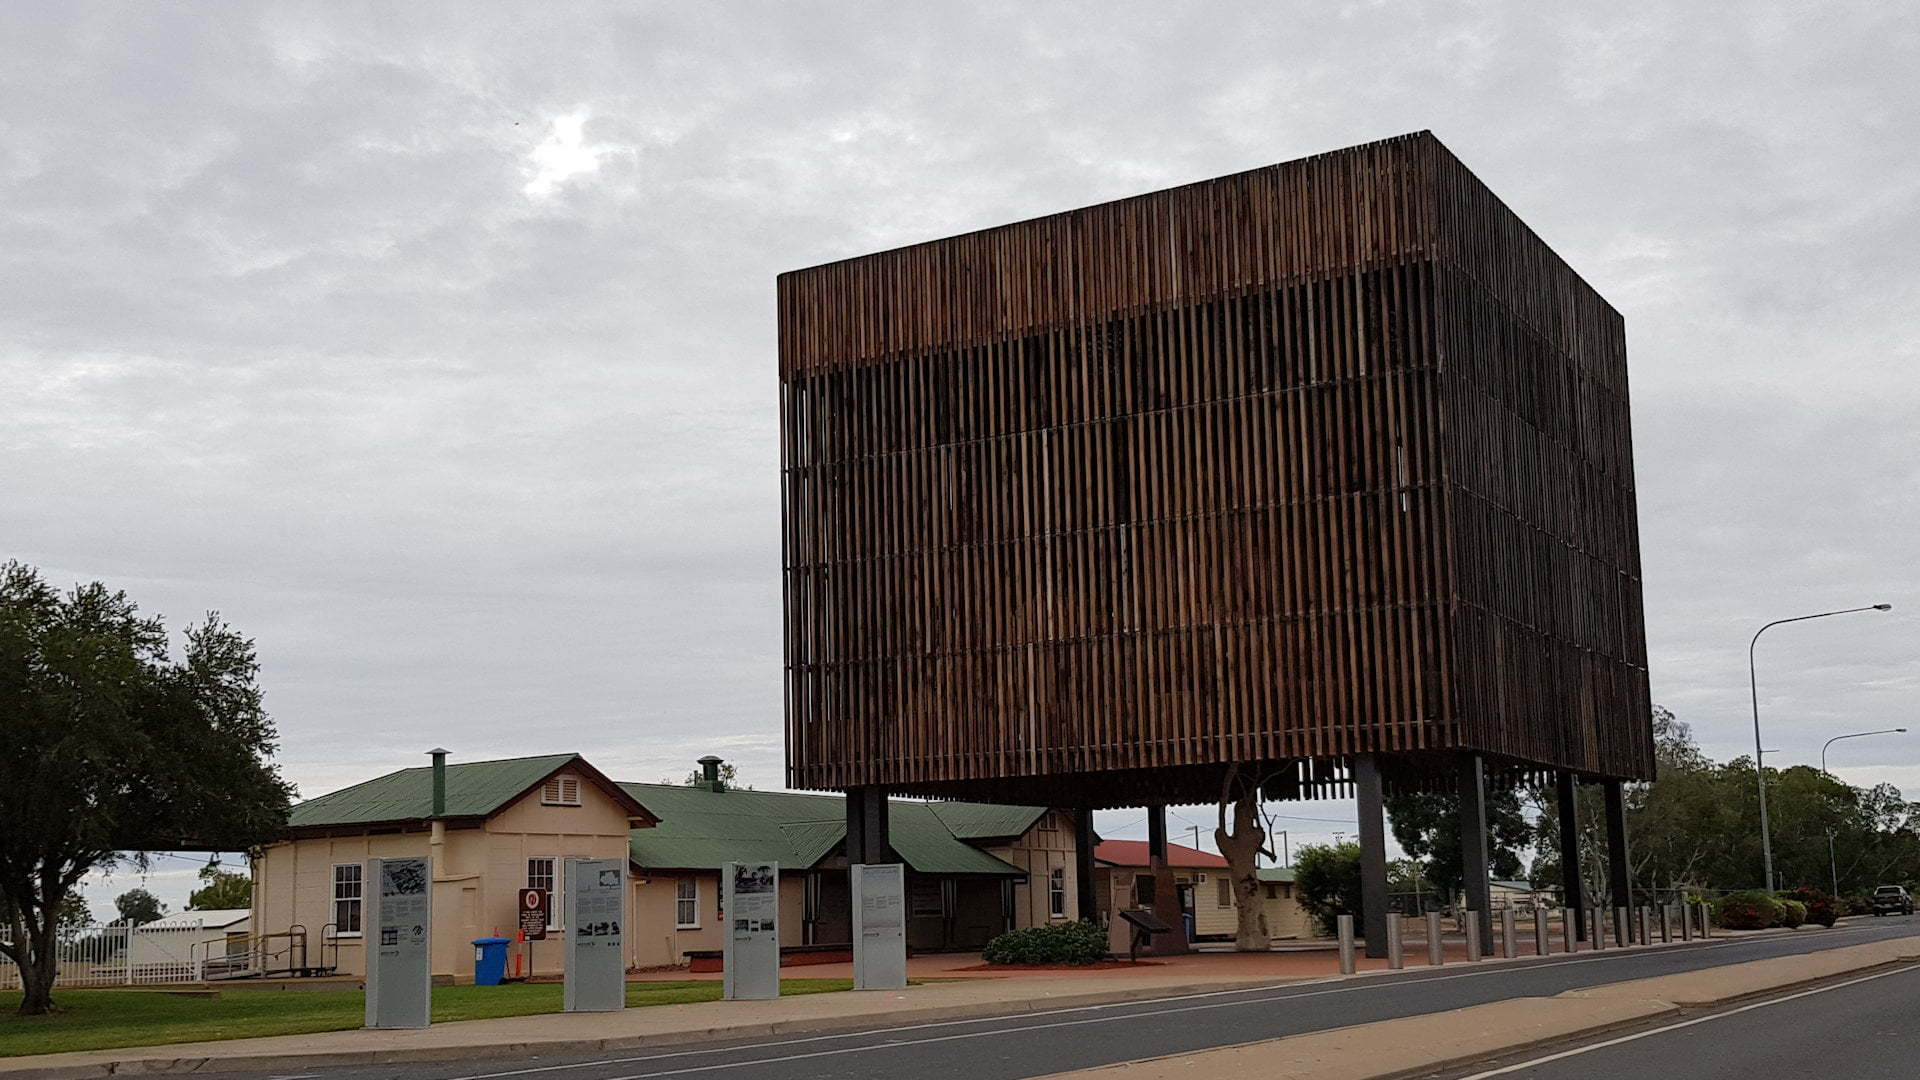 Memorial of the Tree Of Knowledge in the main street of Barcaldine